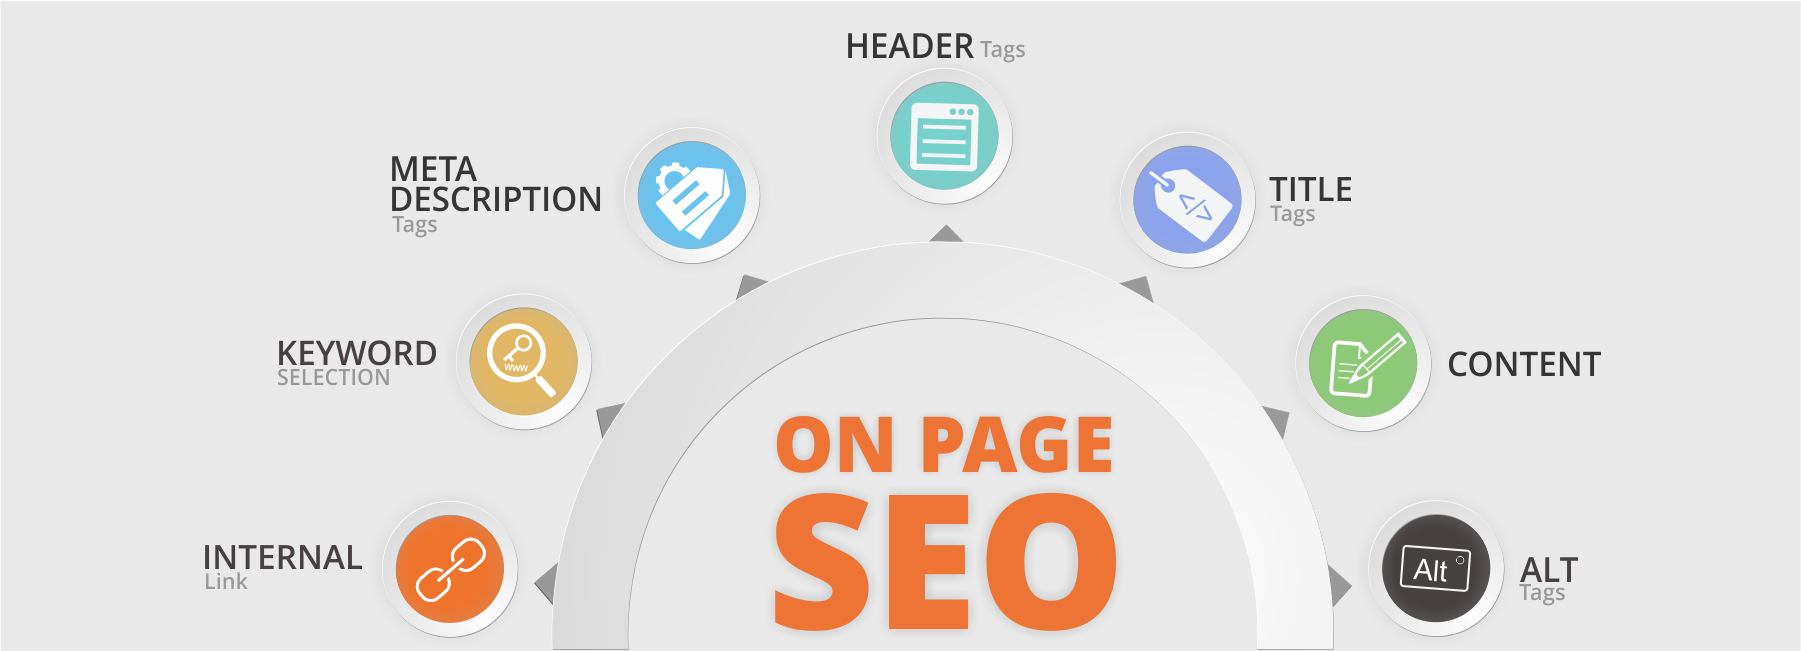 Seo-on-page